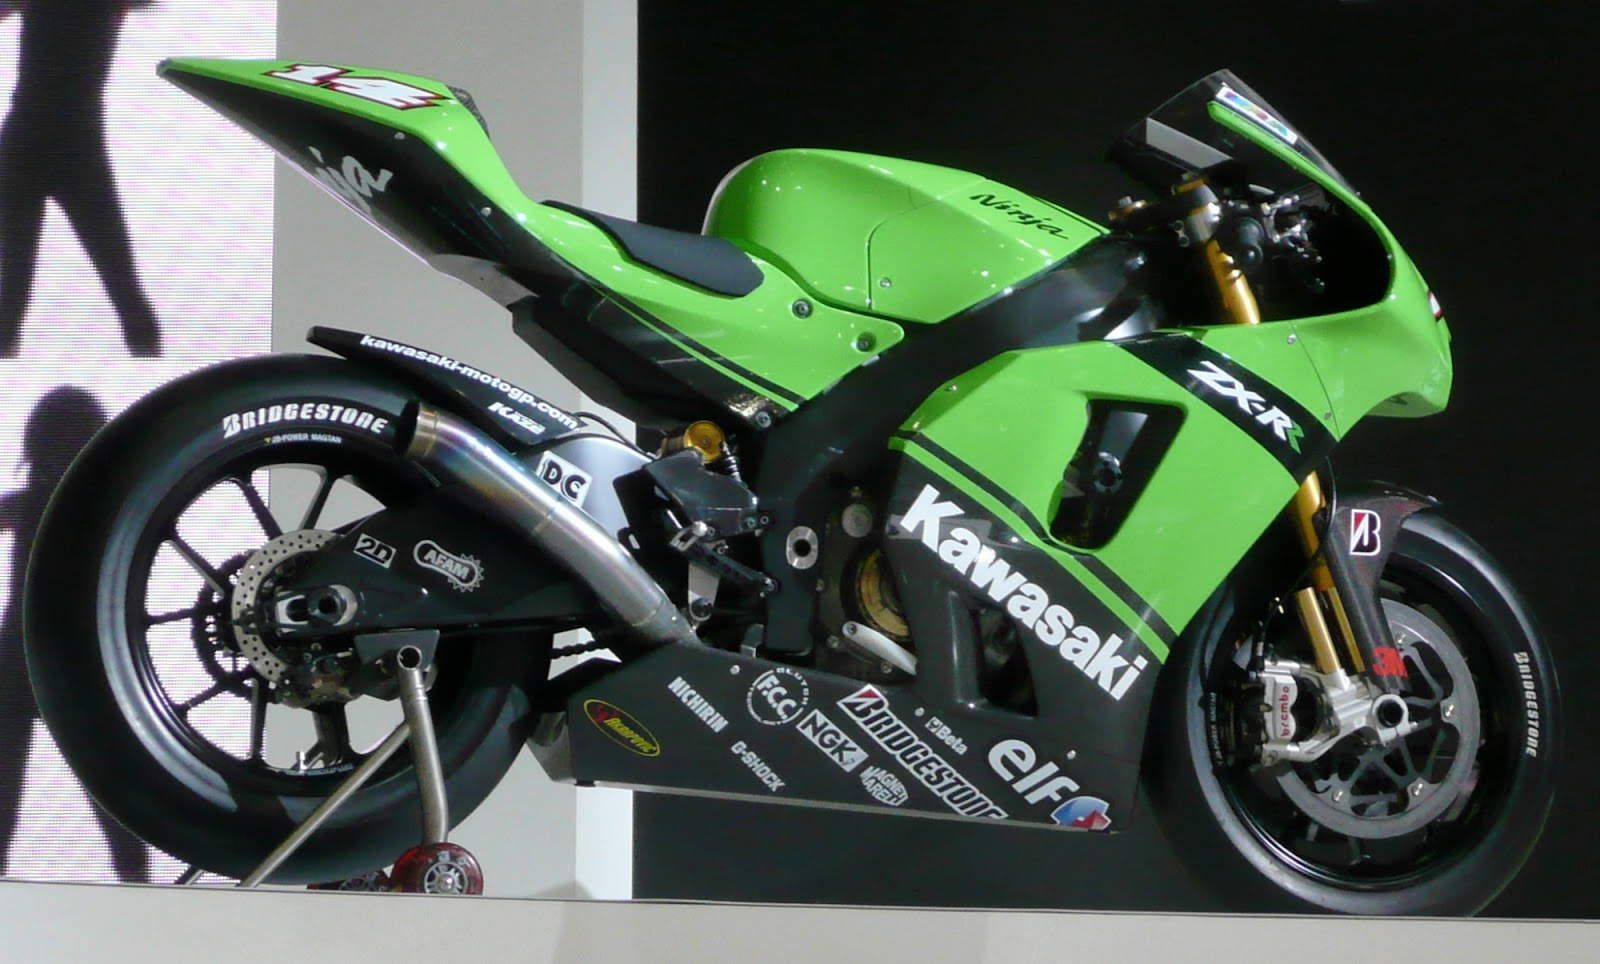 Kawasaki Aircraft initially manufactured motorcycles under the Meguroname,  having bought out an ailing motorcycle manufacturer called Meguro  Manufacturing ...